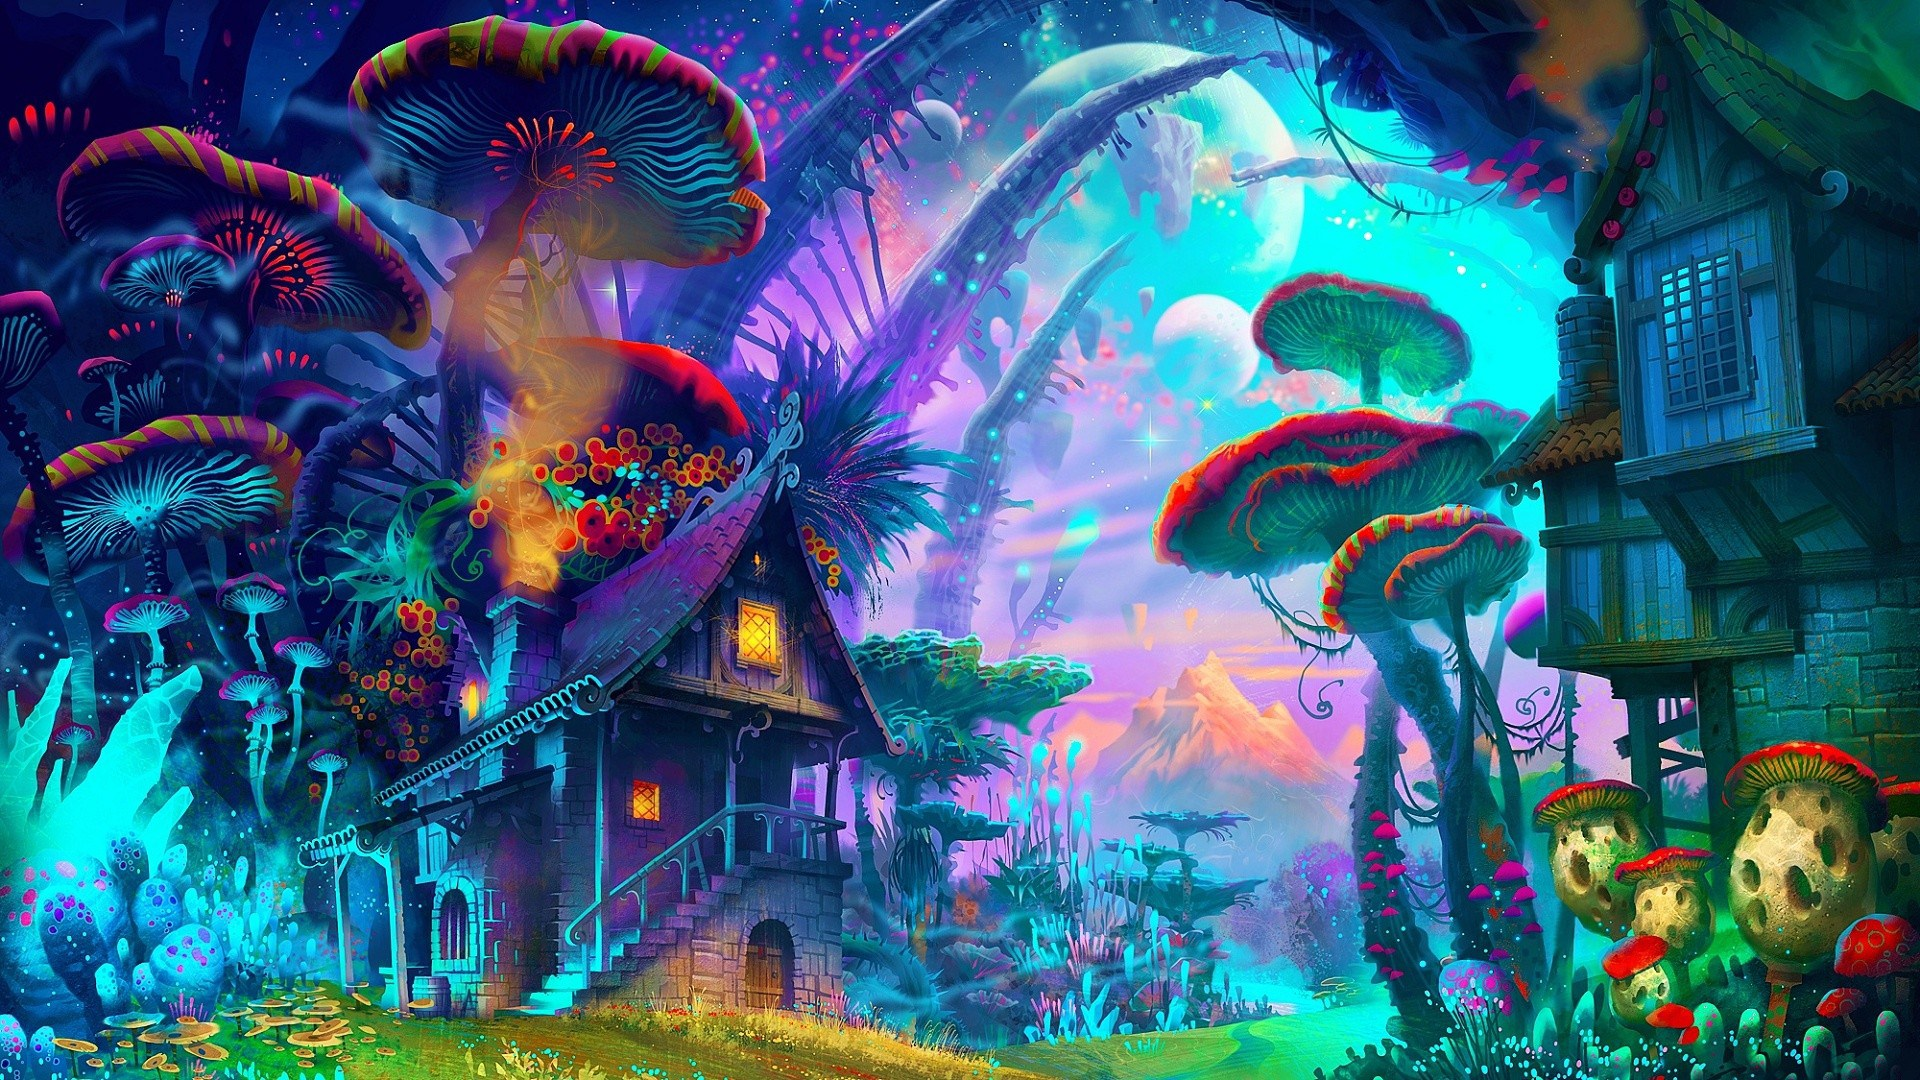 Cool Backgrounds Trippy Psychedelic Wallpapers Psychedelic 1920x1080